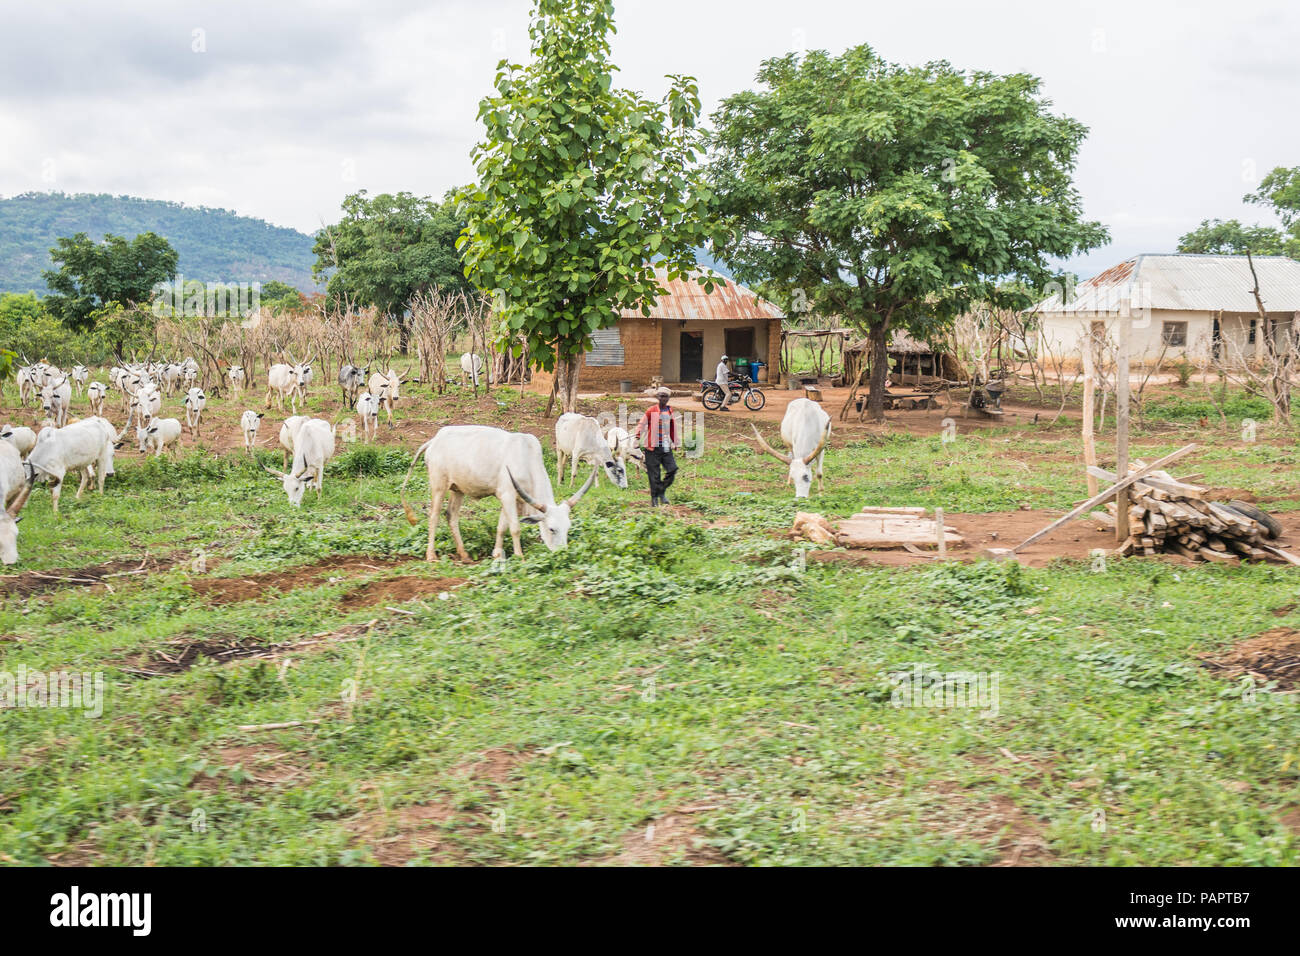 A rural dwelling of villages with herdsmen raising their cattle in the wide. - Stock Image